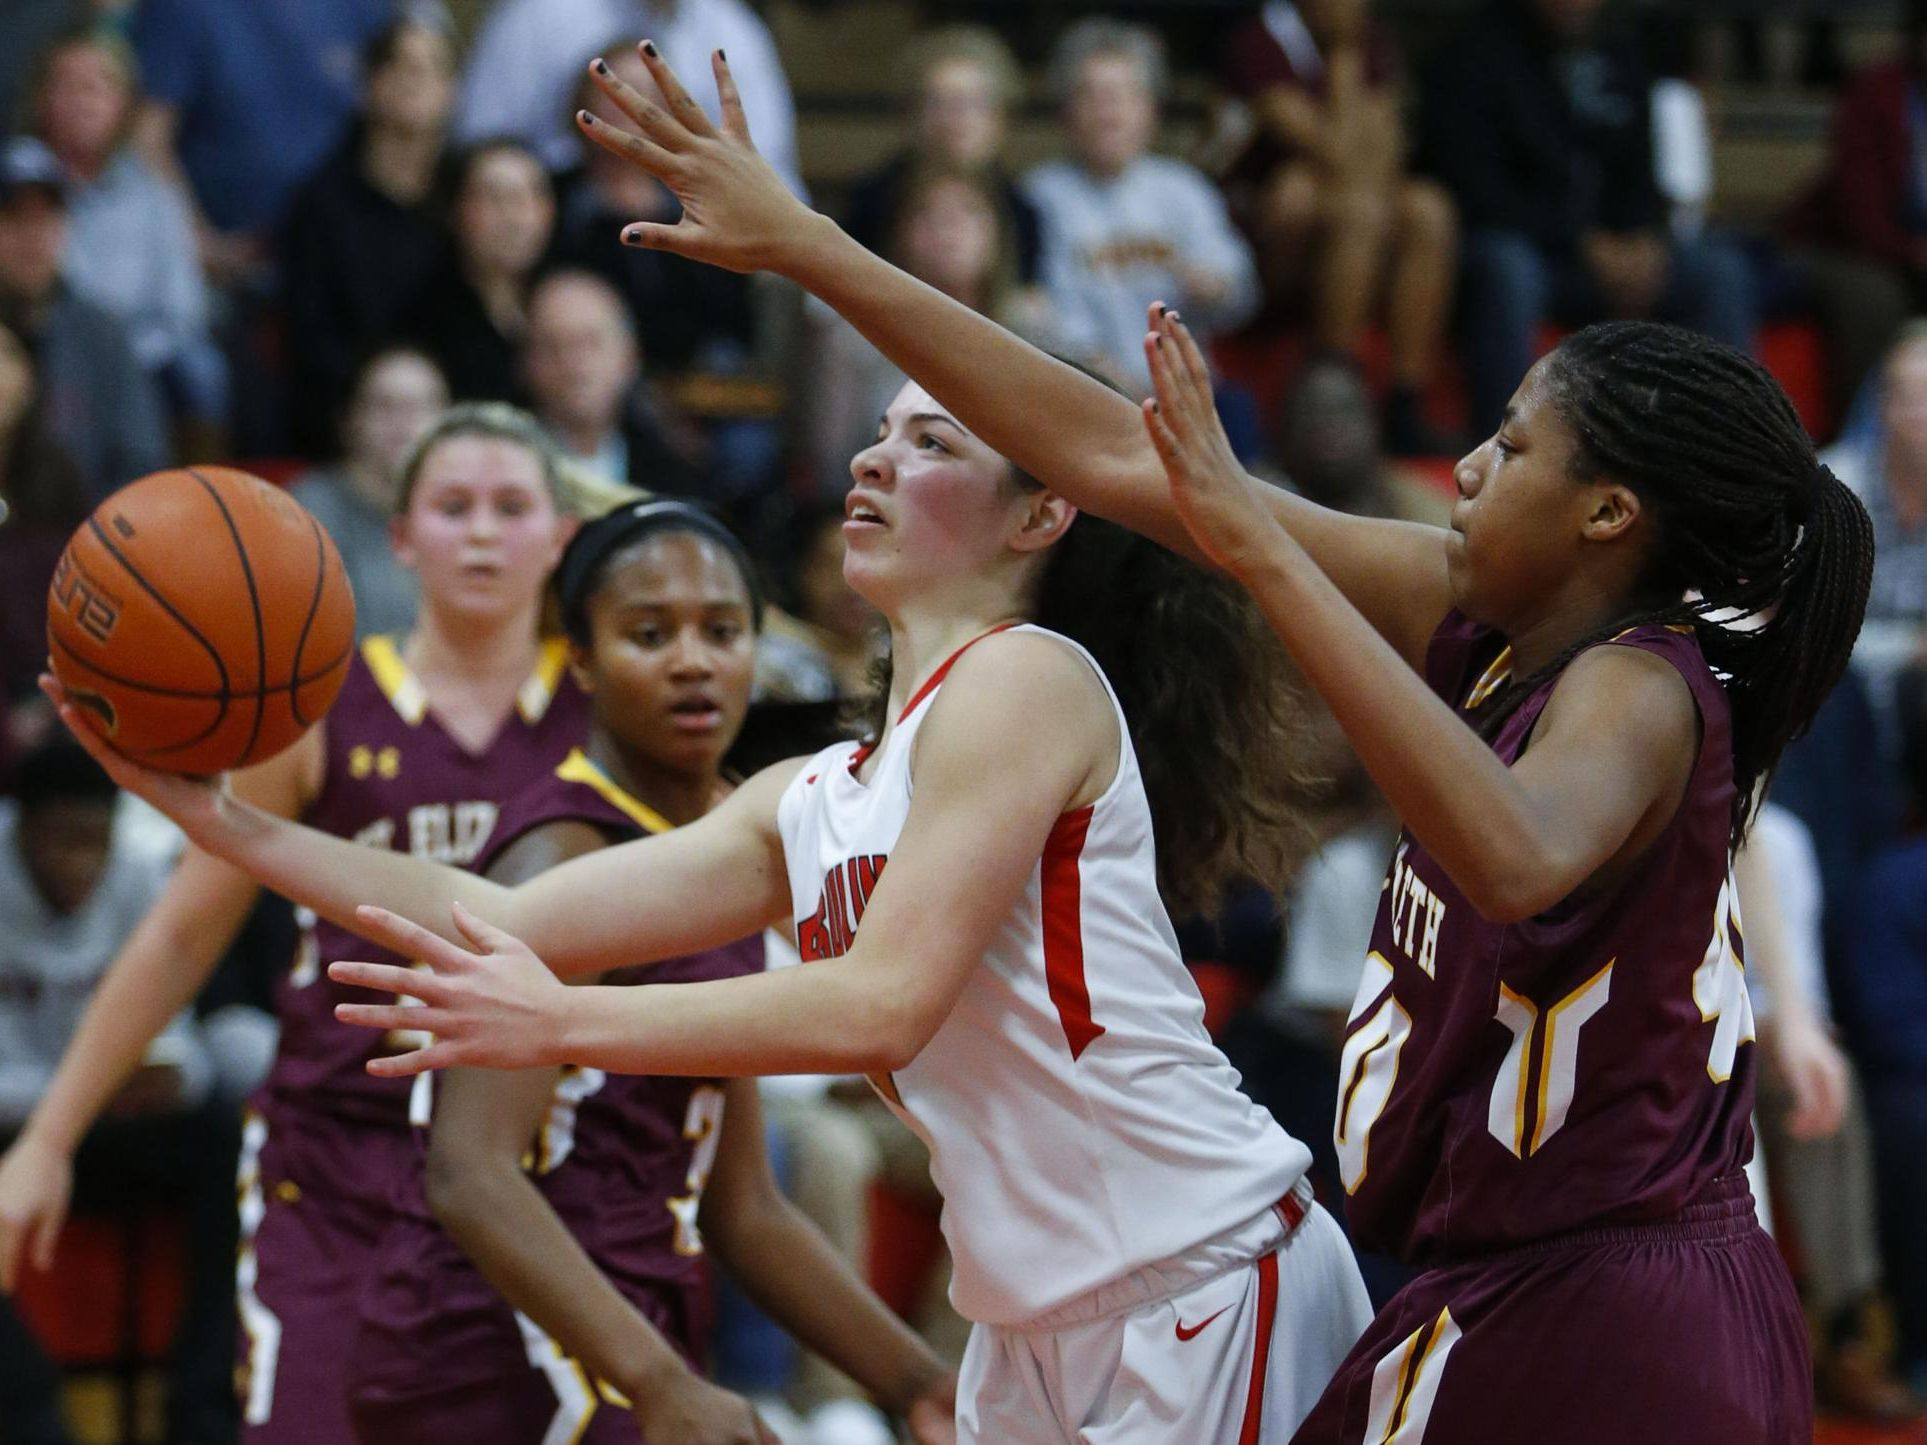 Ursuline's Alisha Lewis (left) goes to the basket in front of St. Elizabeth's Alexis Lee in the second half of Ursuline's 58-43 home win Wednesday.